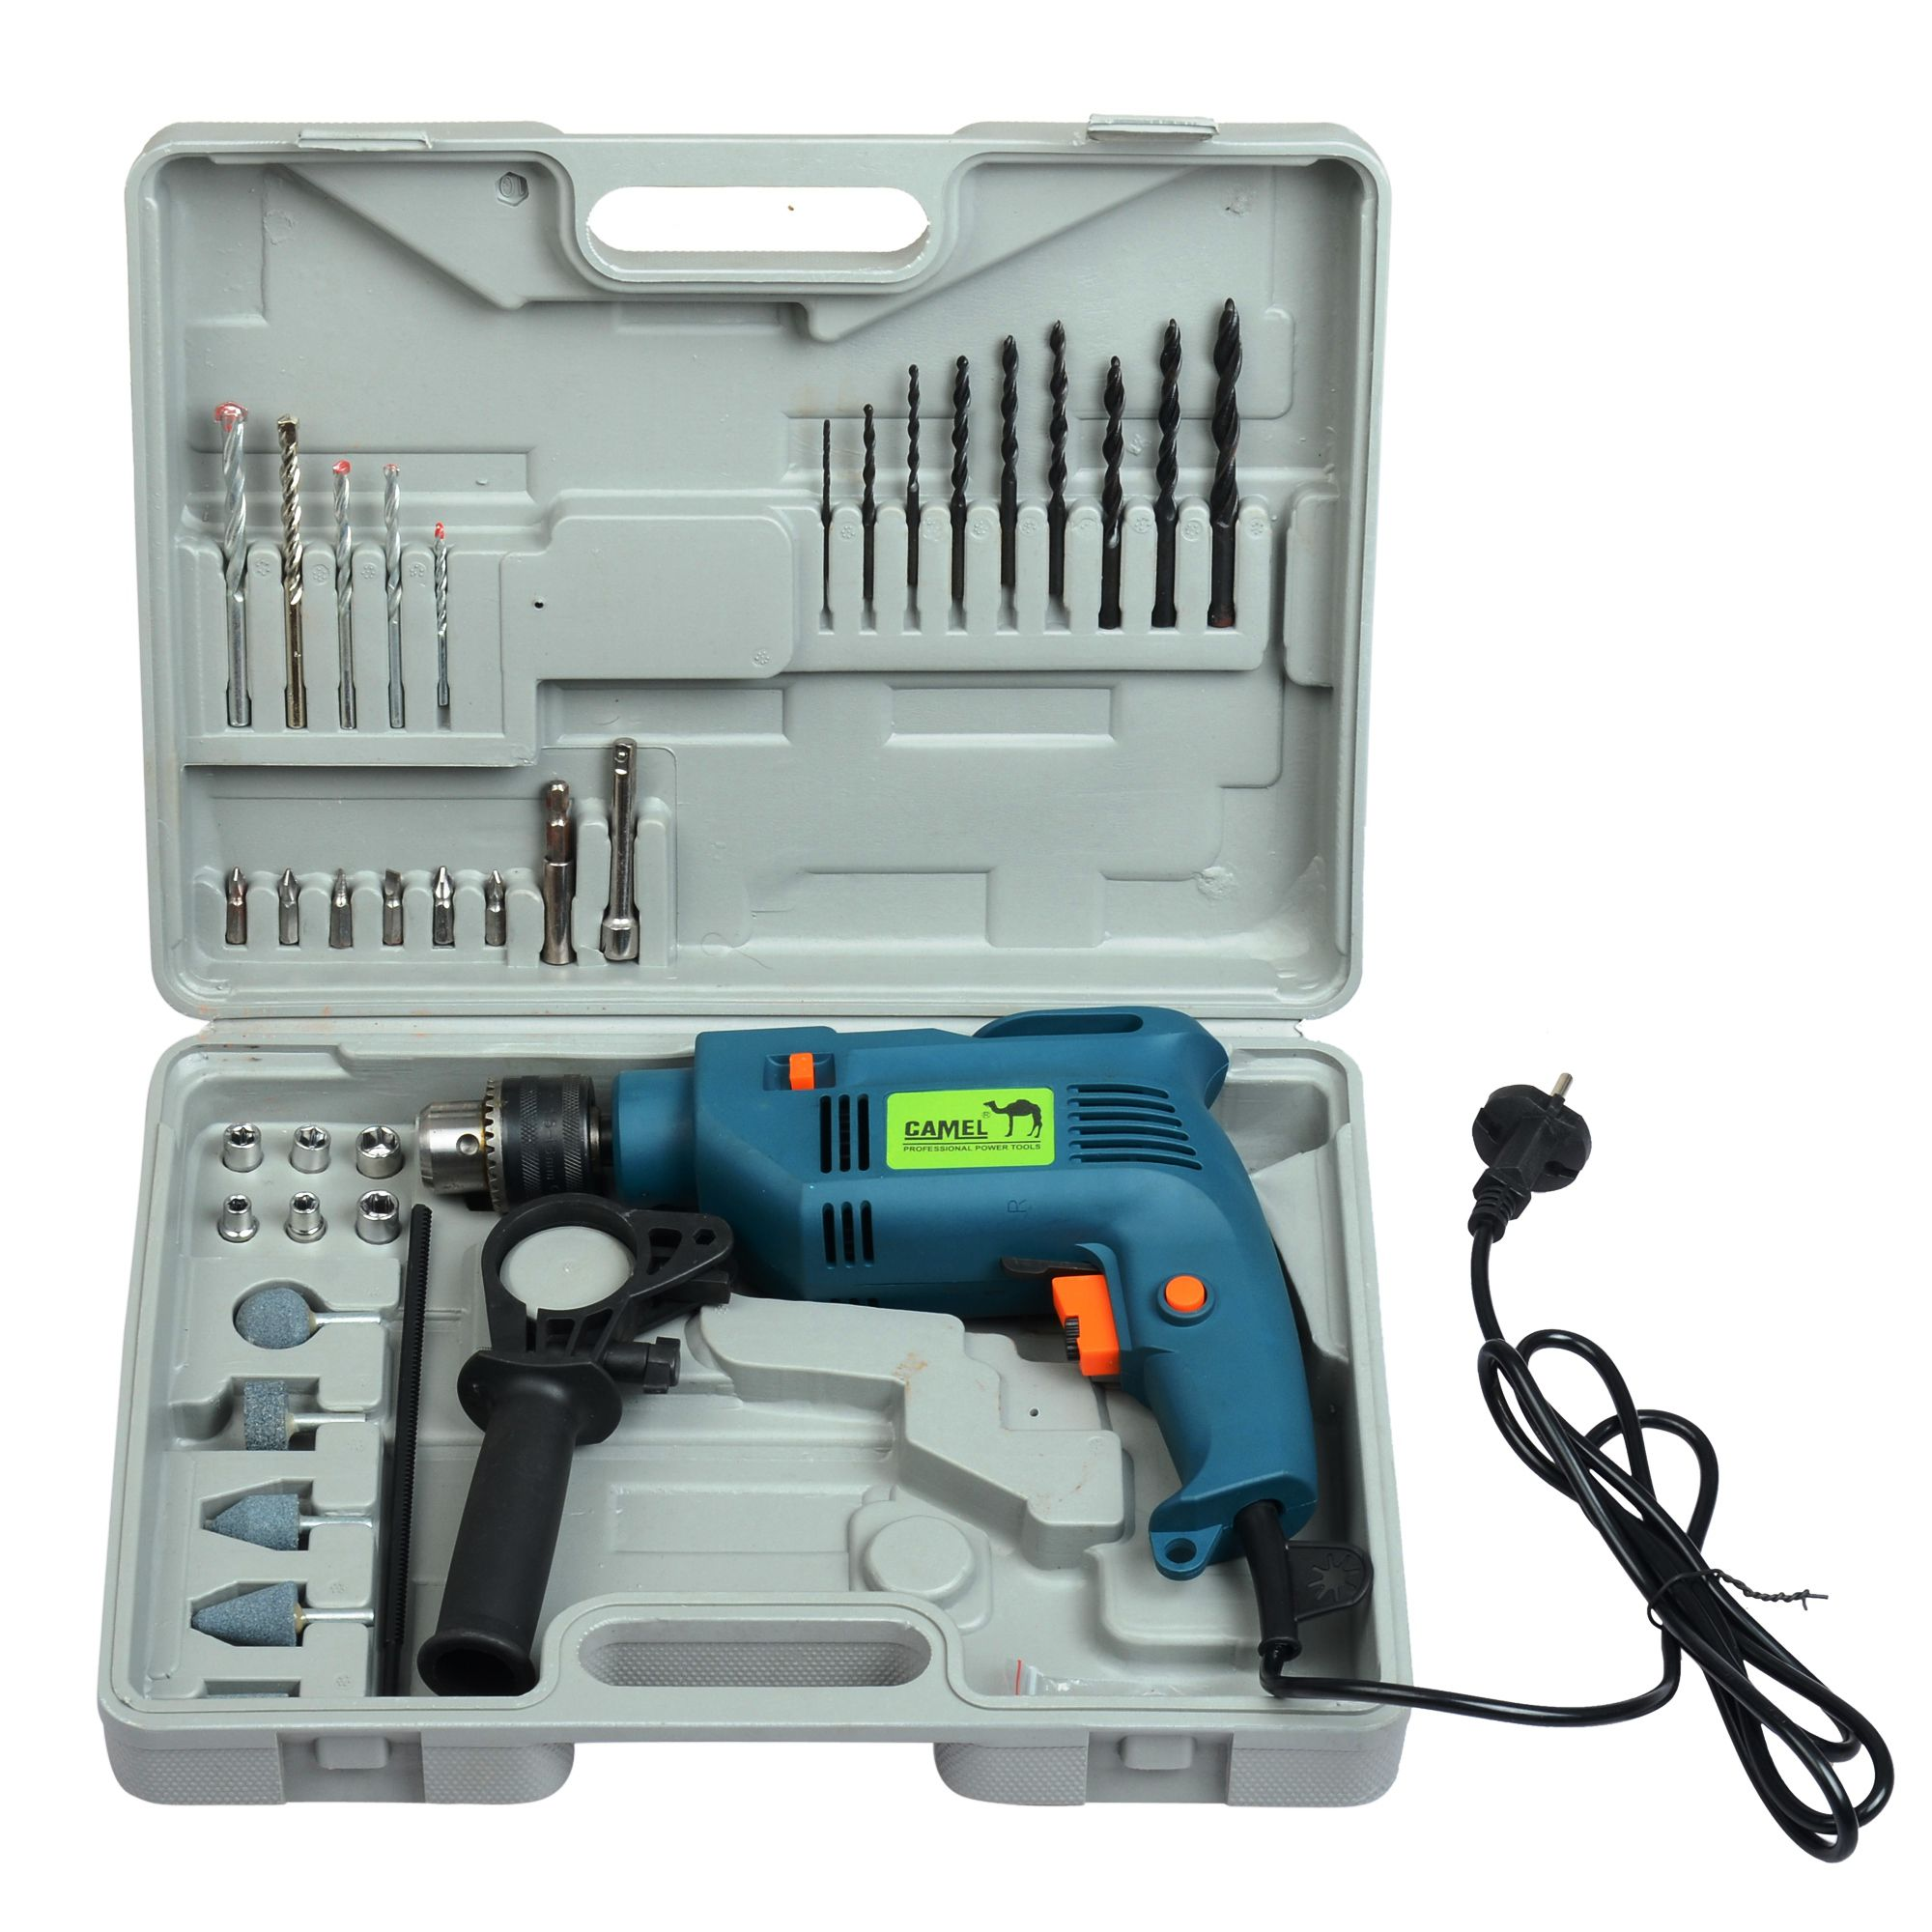 Camel 13Mm 500W Impact Drill Machine Tool Kit/Box With ...